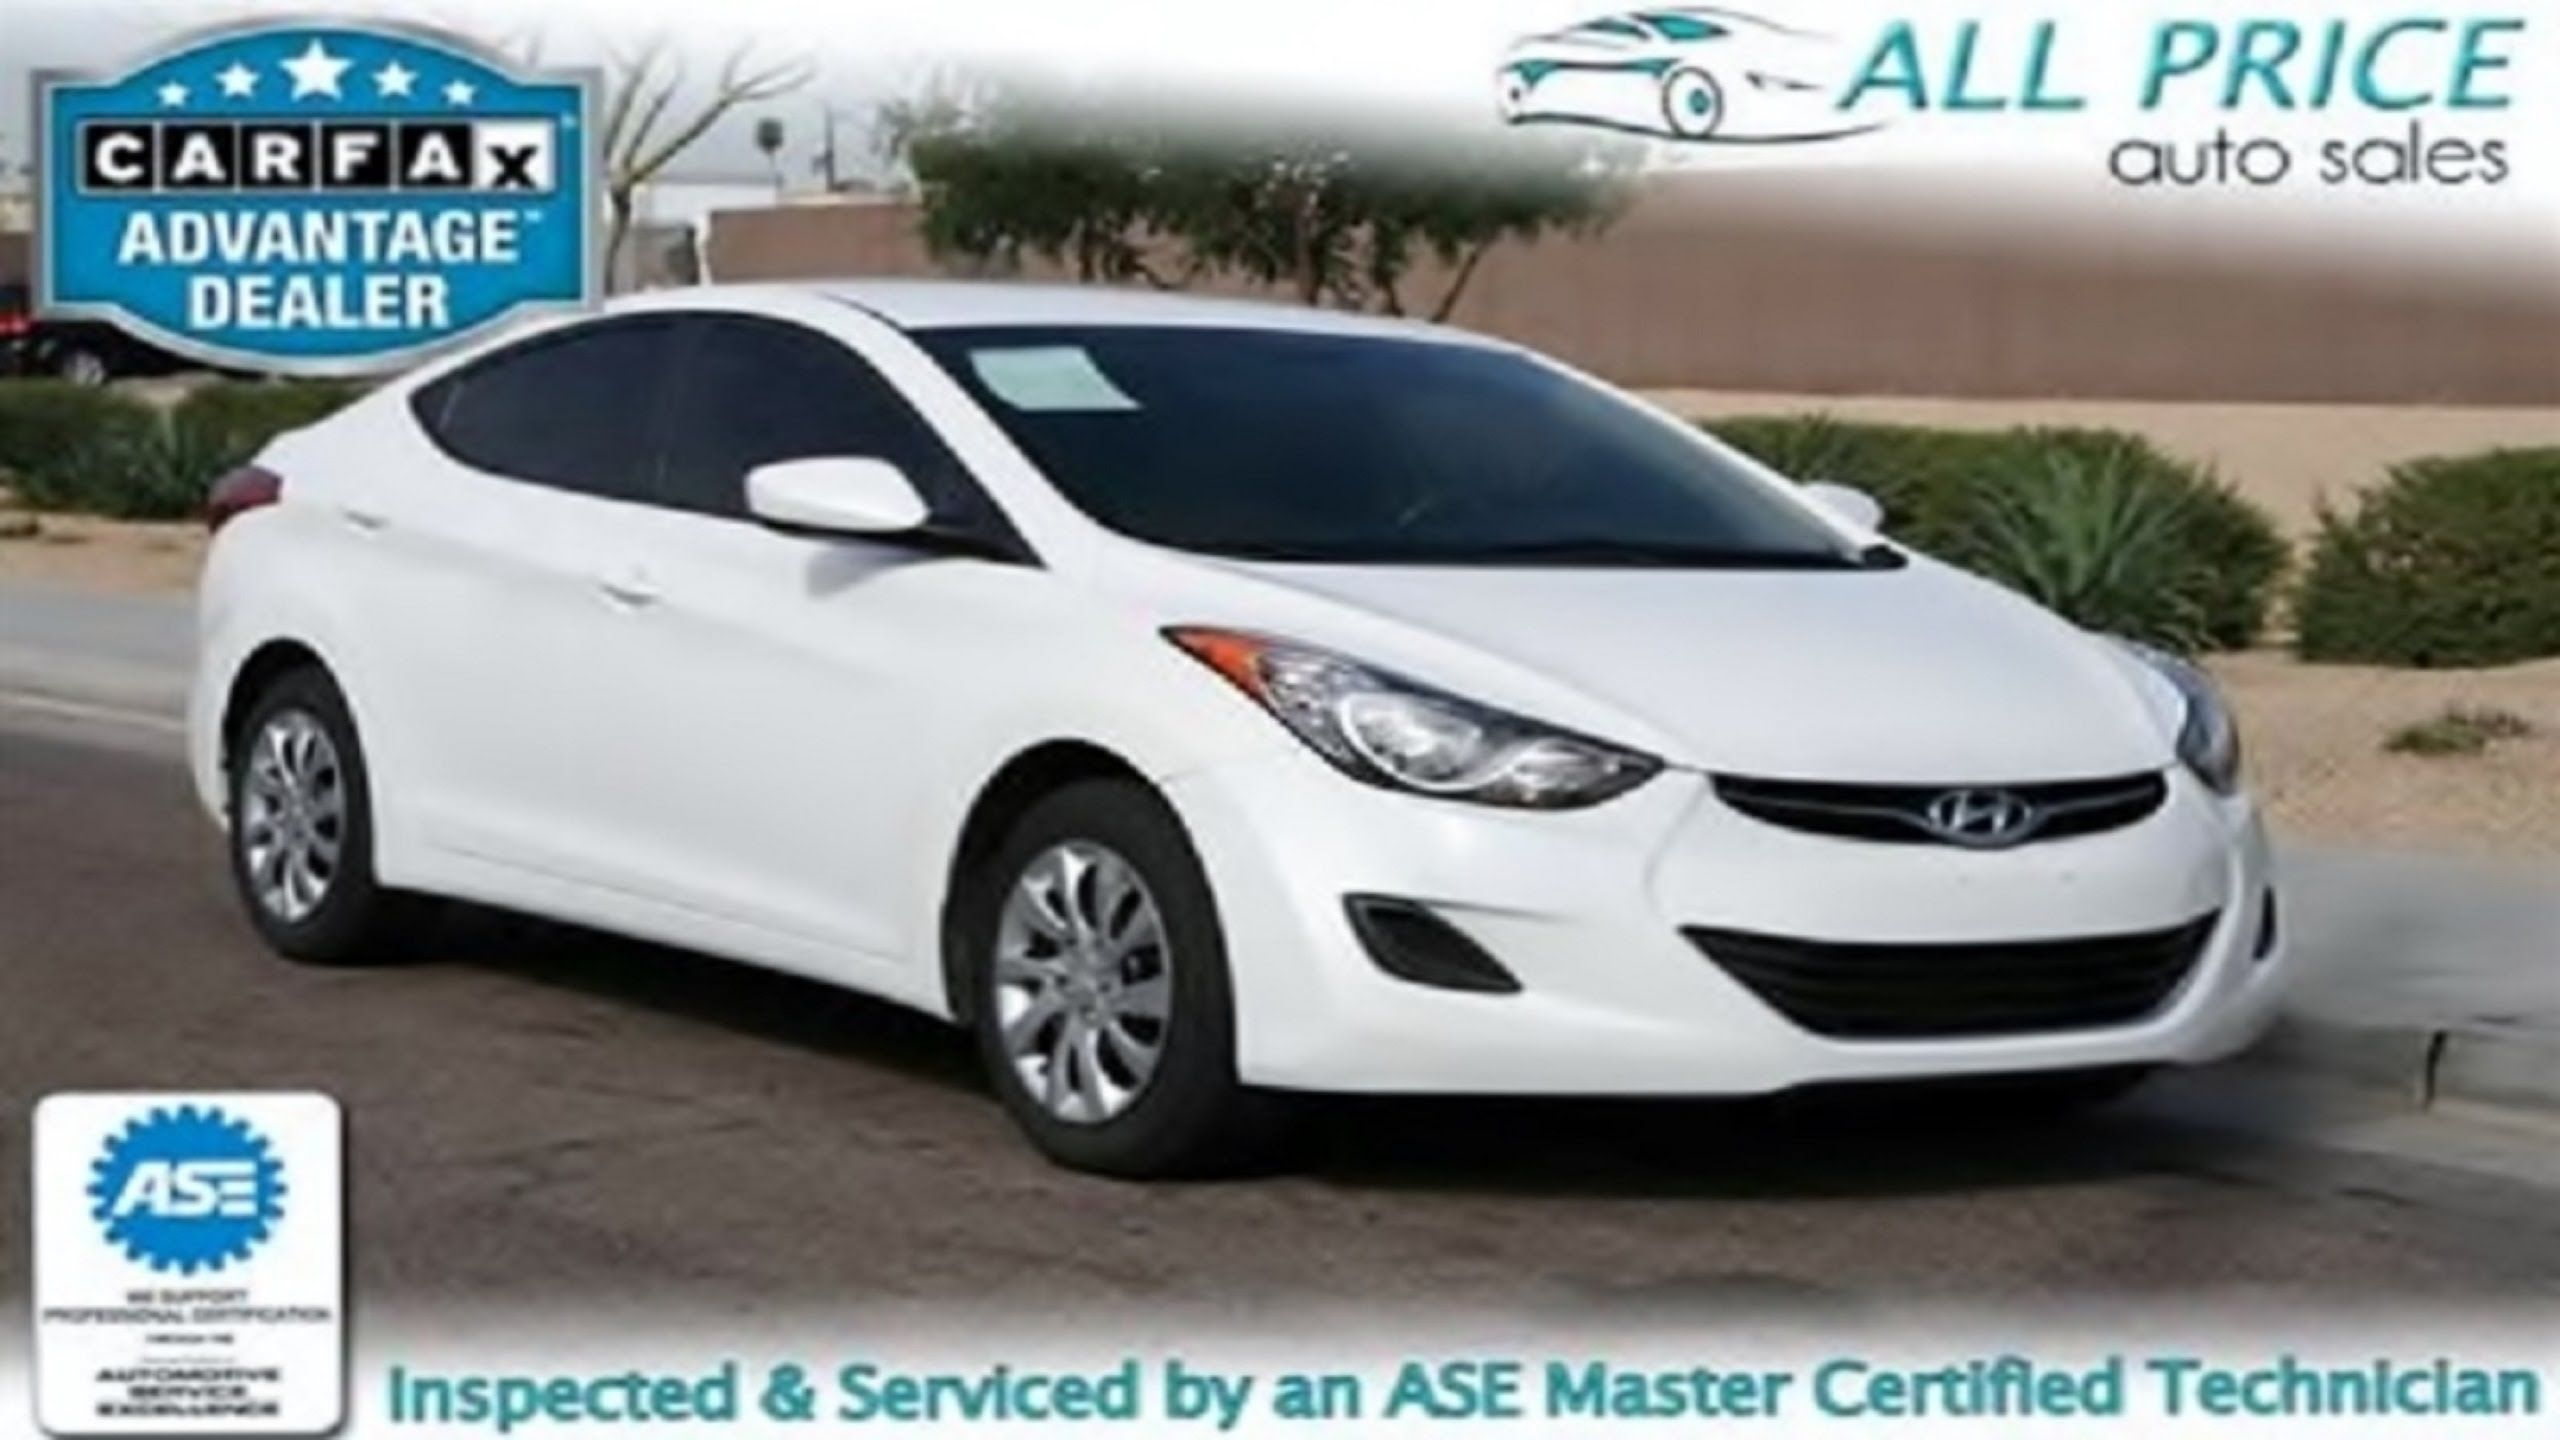 Used Cars For Sale In Phoenix Az 2012 Hyundai Elantra All Price